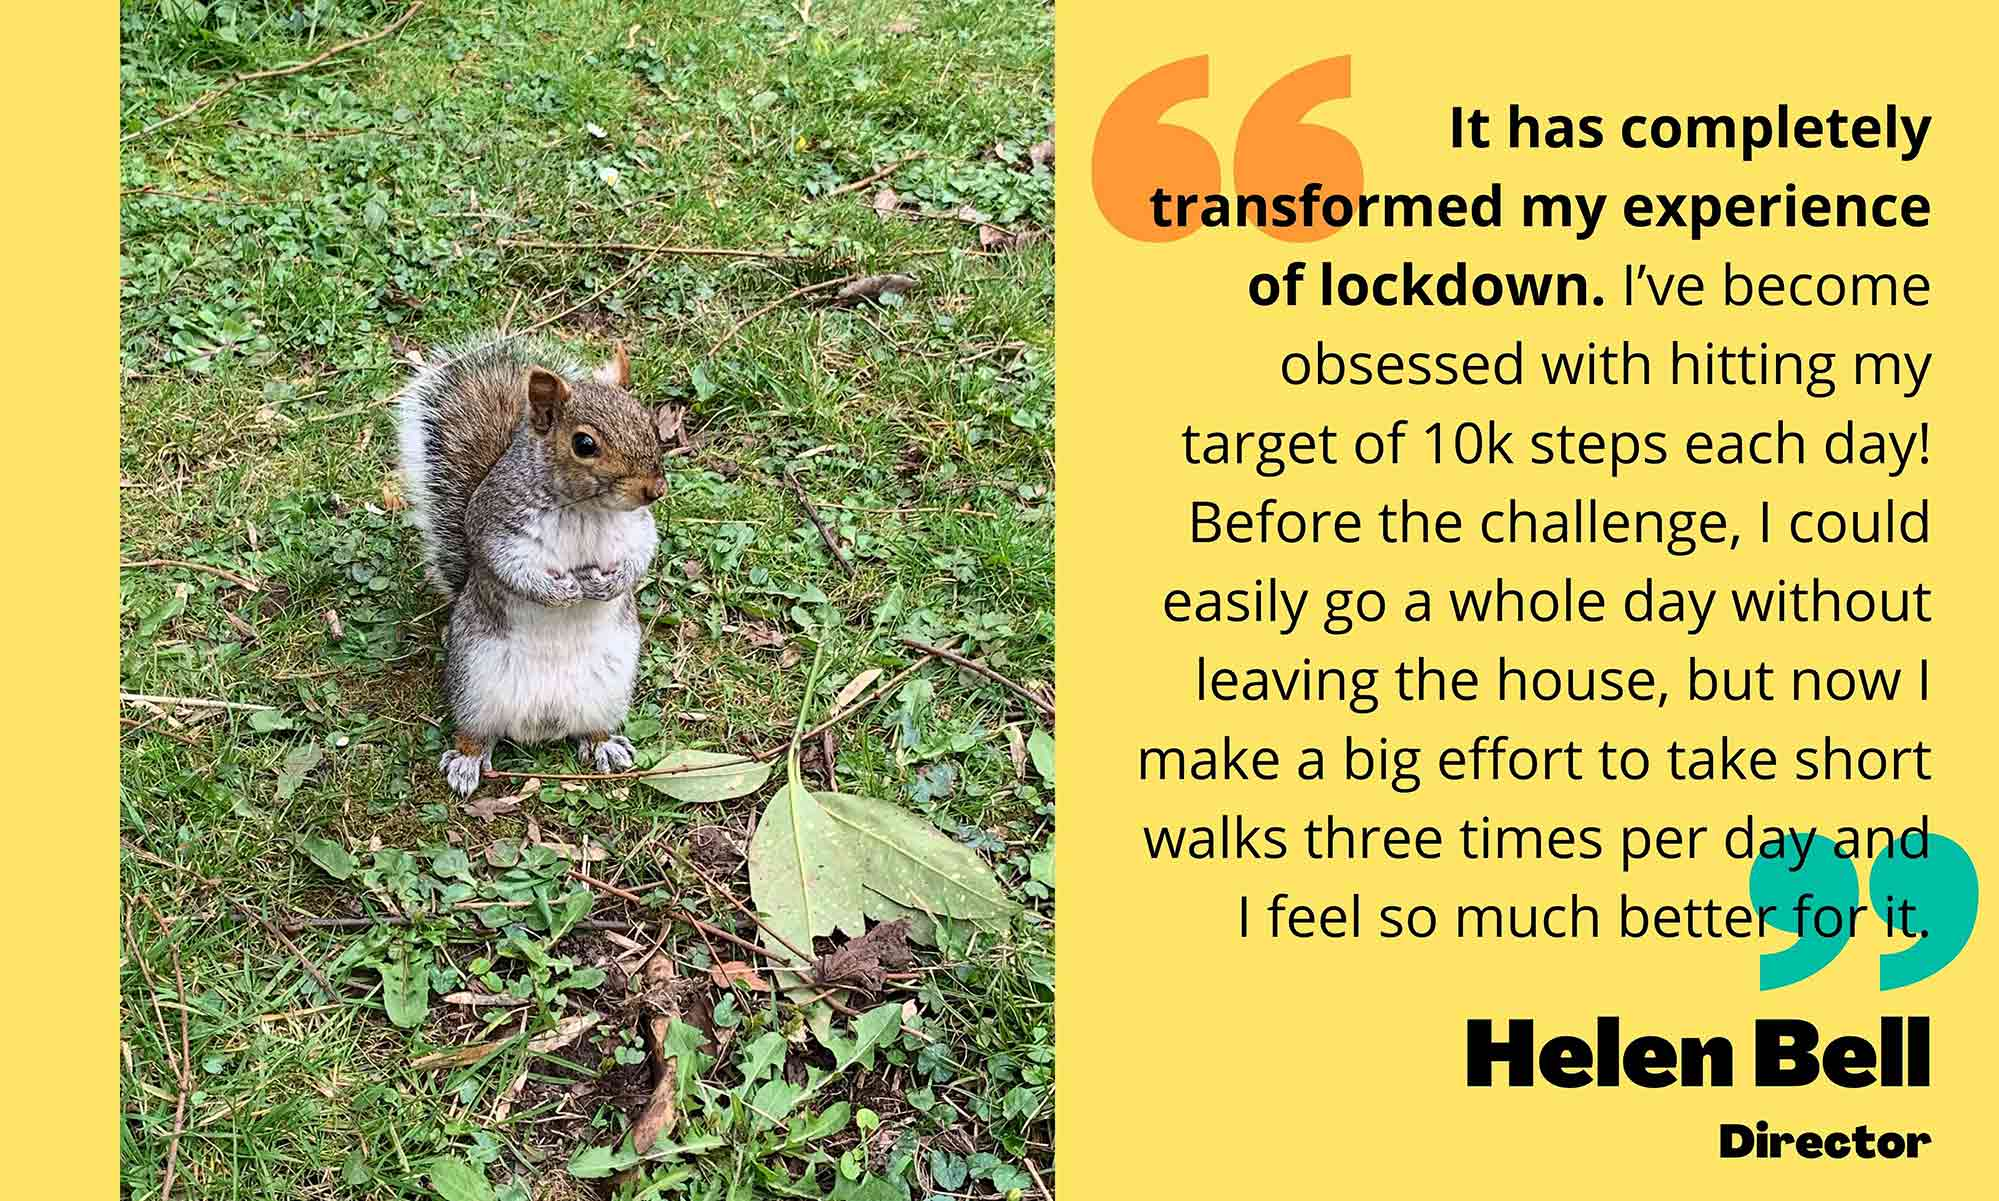 Photo of squirrel on left side, quote on right side from Helen Bell